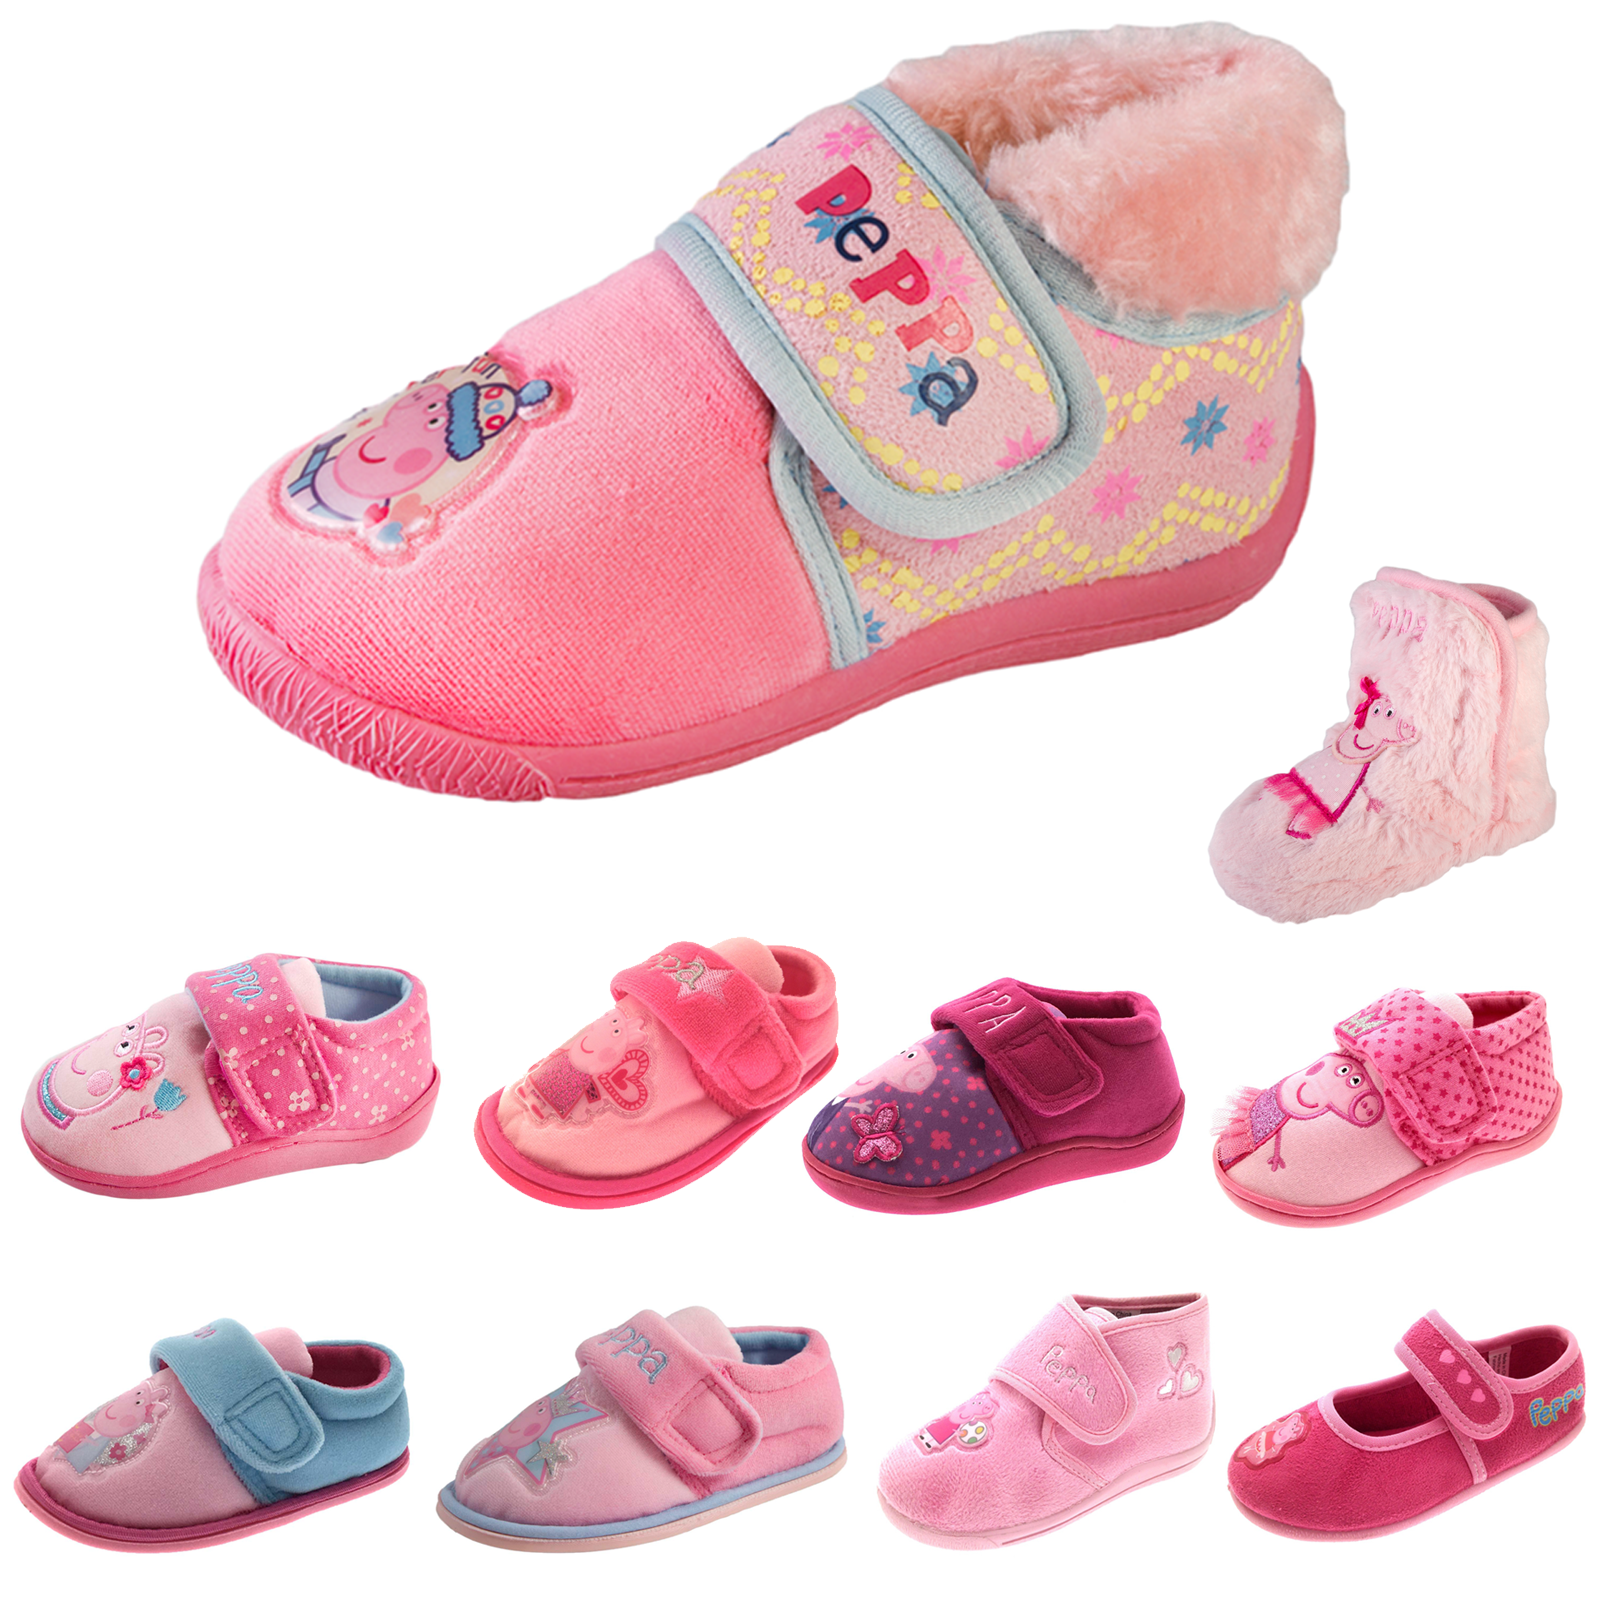 8feaf59f1ac42 Peppa Pig Slippers Girls Pink Booties Character Indoor House Shoes Mules  Size